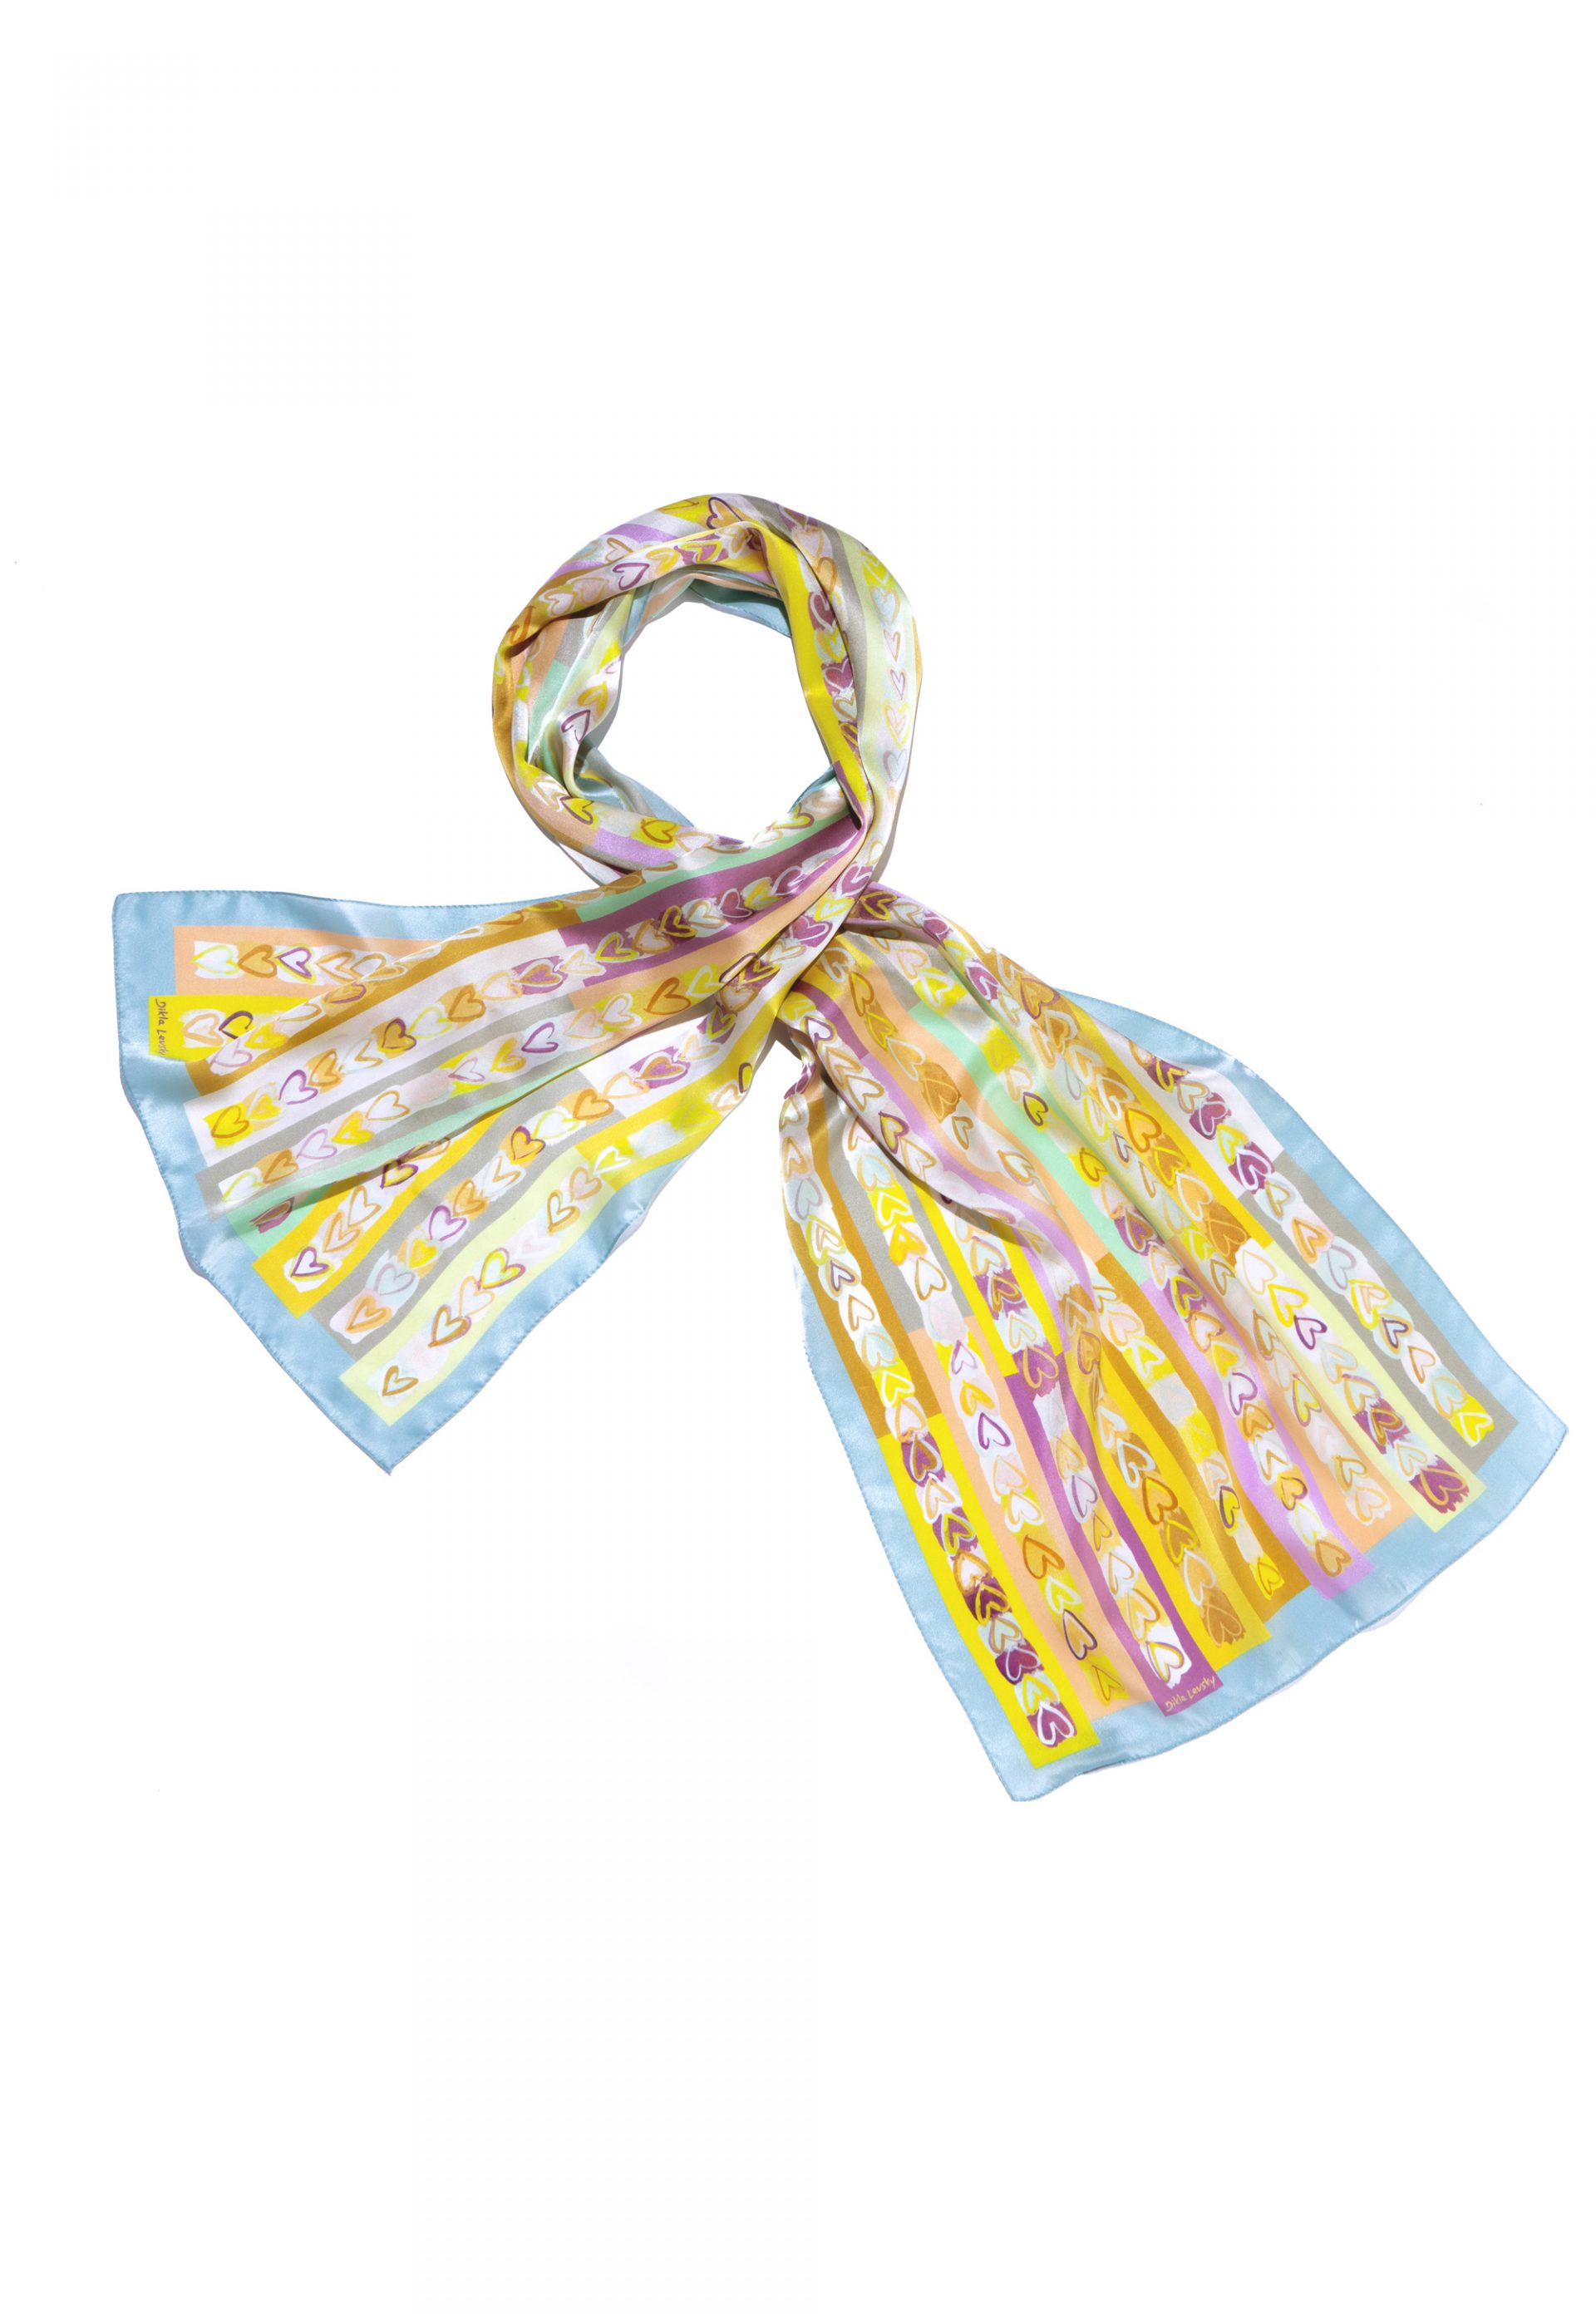 long printed silk scarf with hearts in soft colors